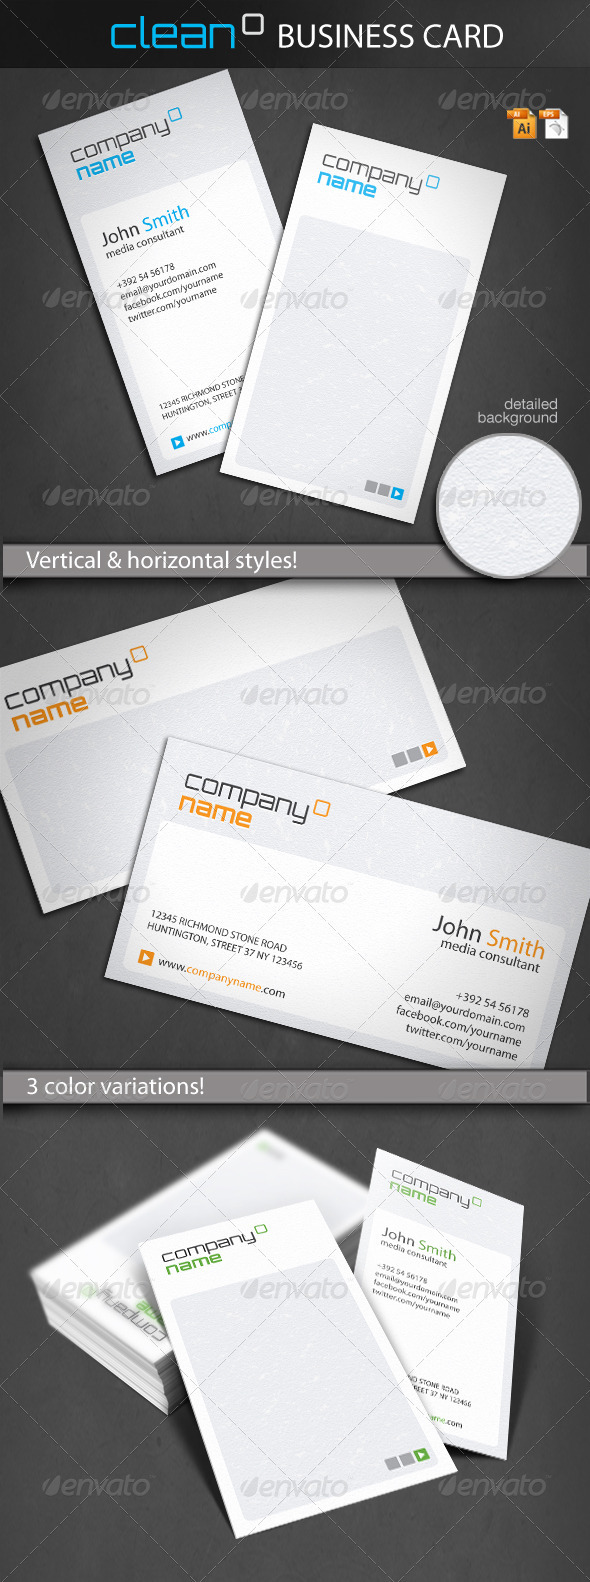 Graphic River Clean Business Card Print Templates -  Business Cards  Corporate 1515917